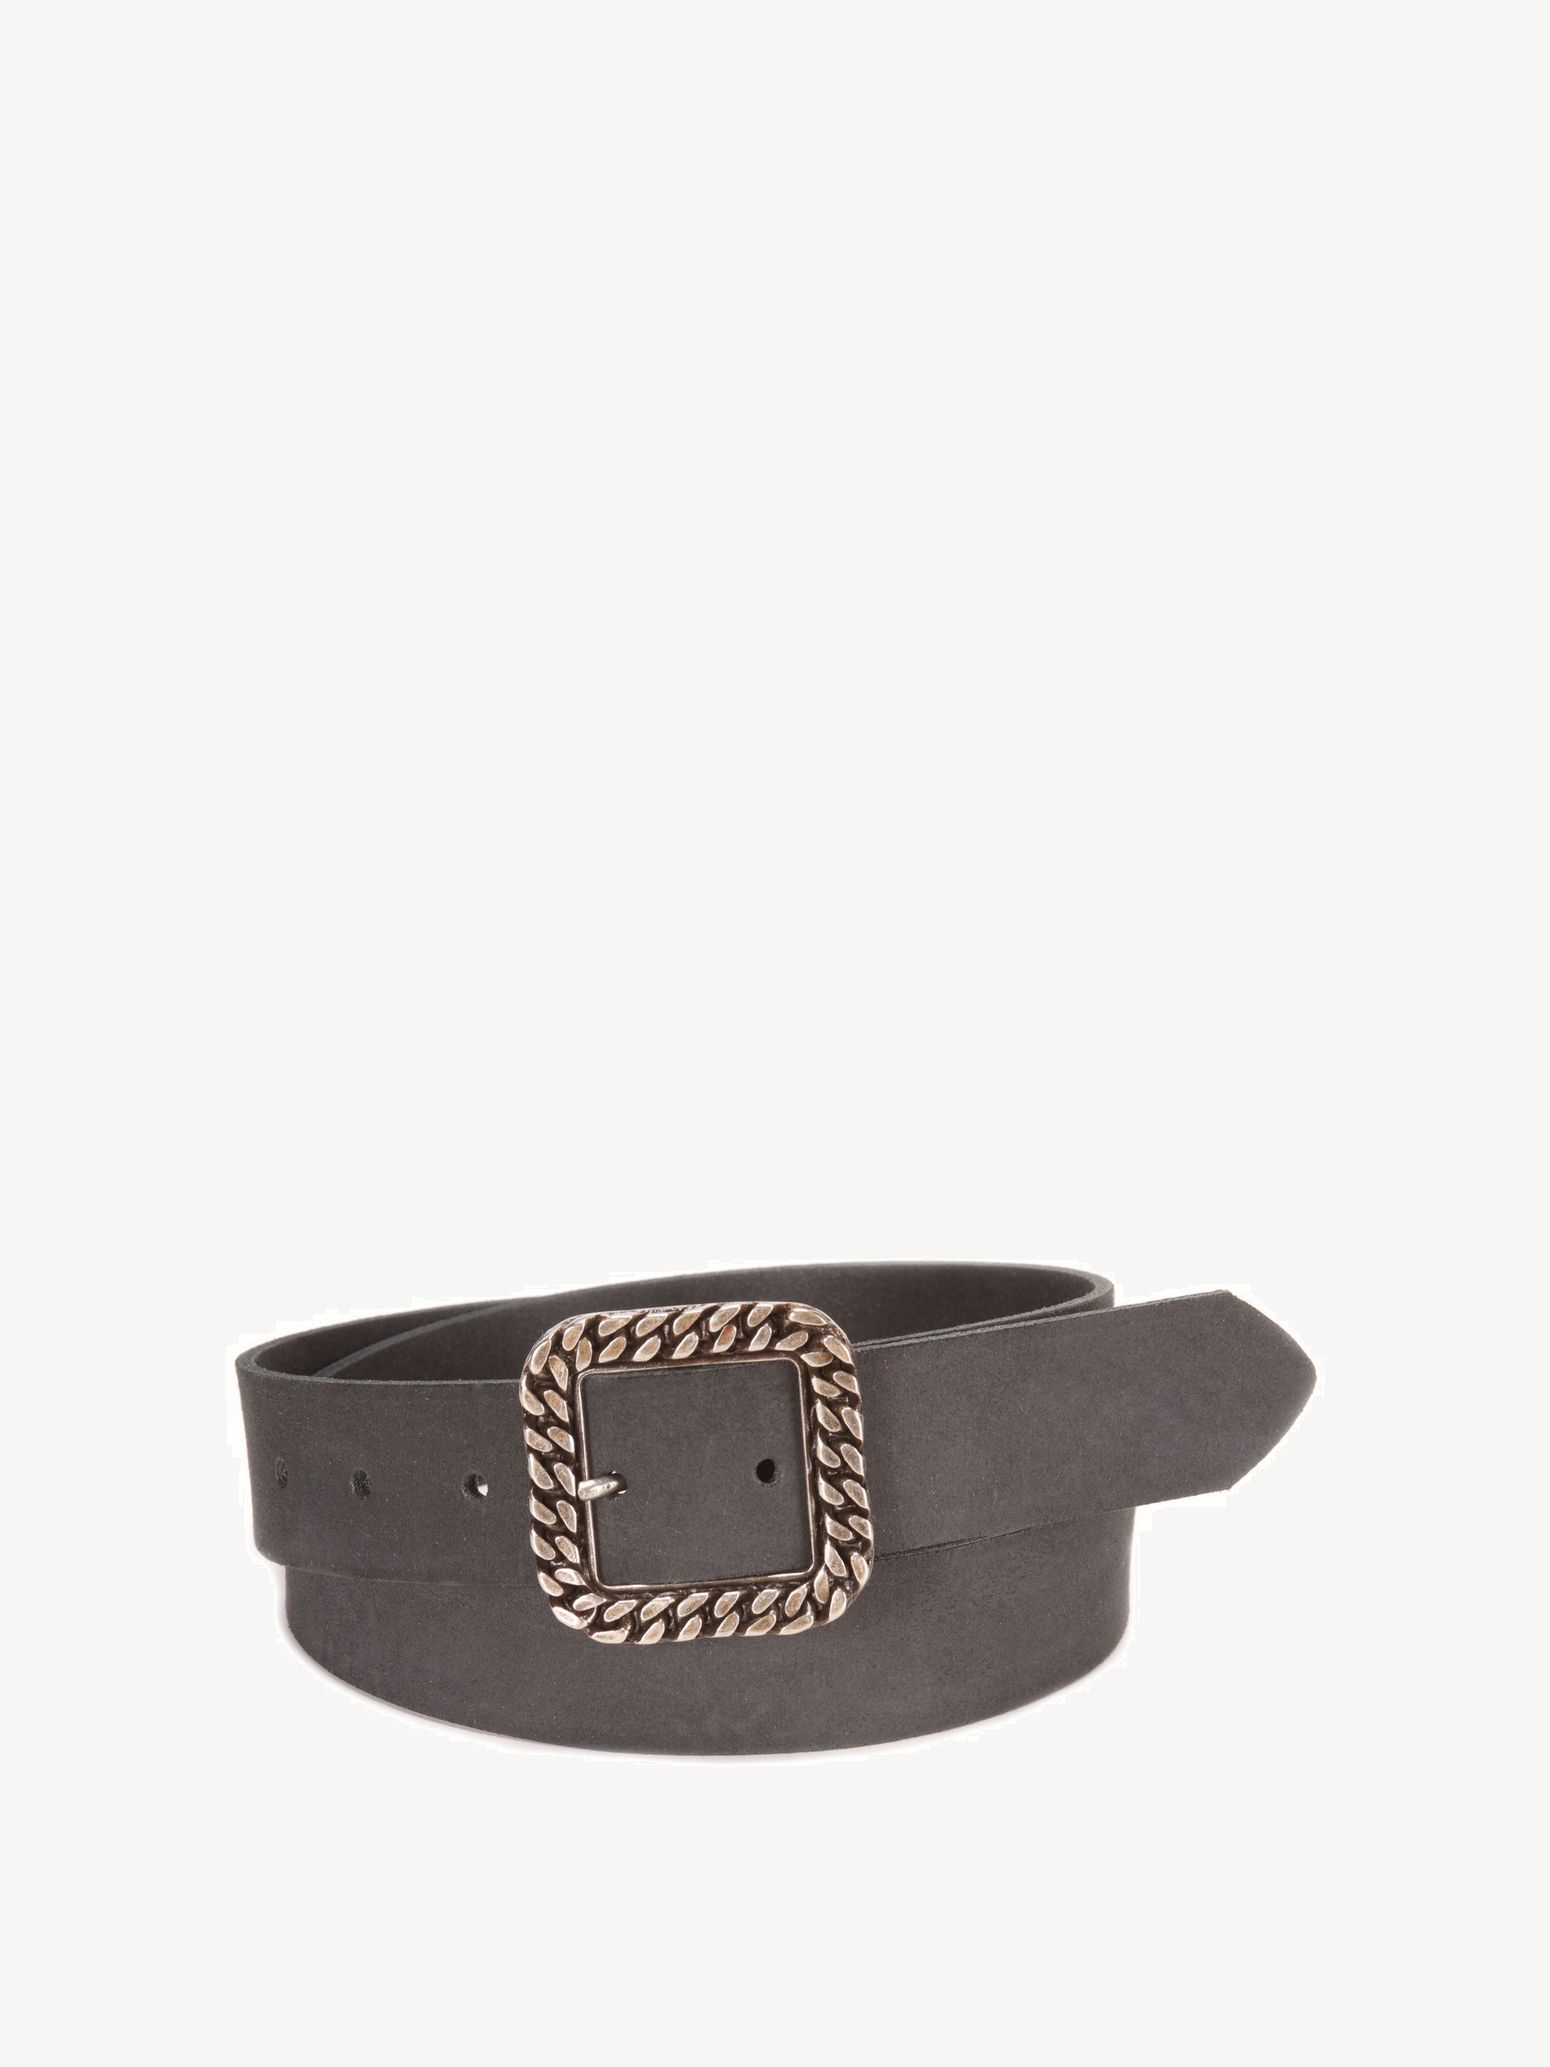 Leather Belts - black, Black, hi-res